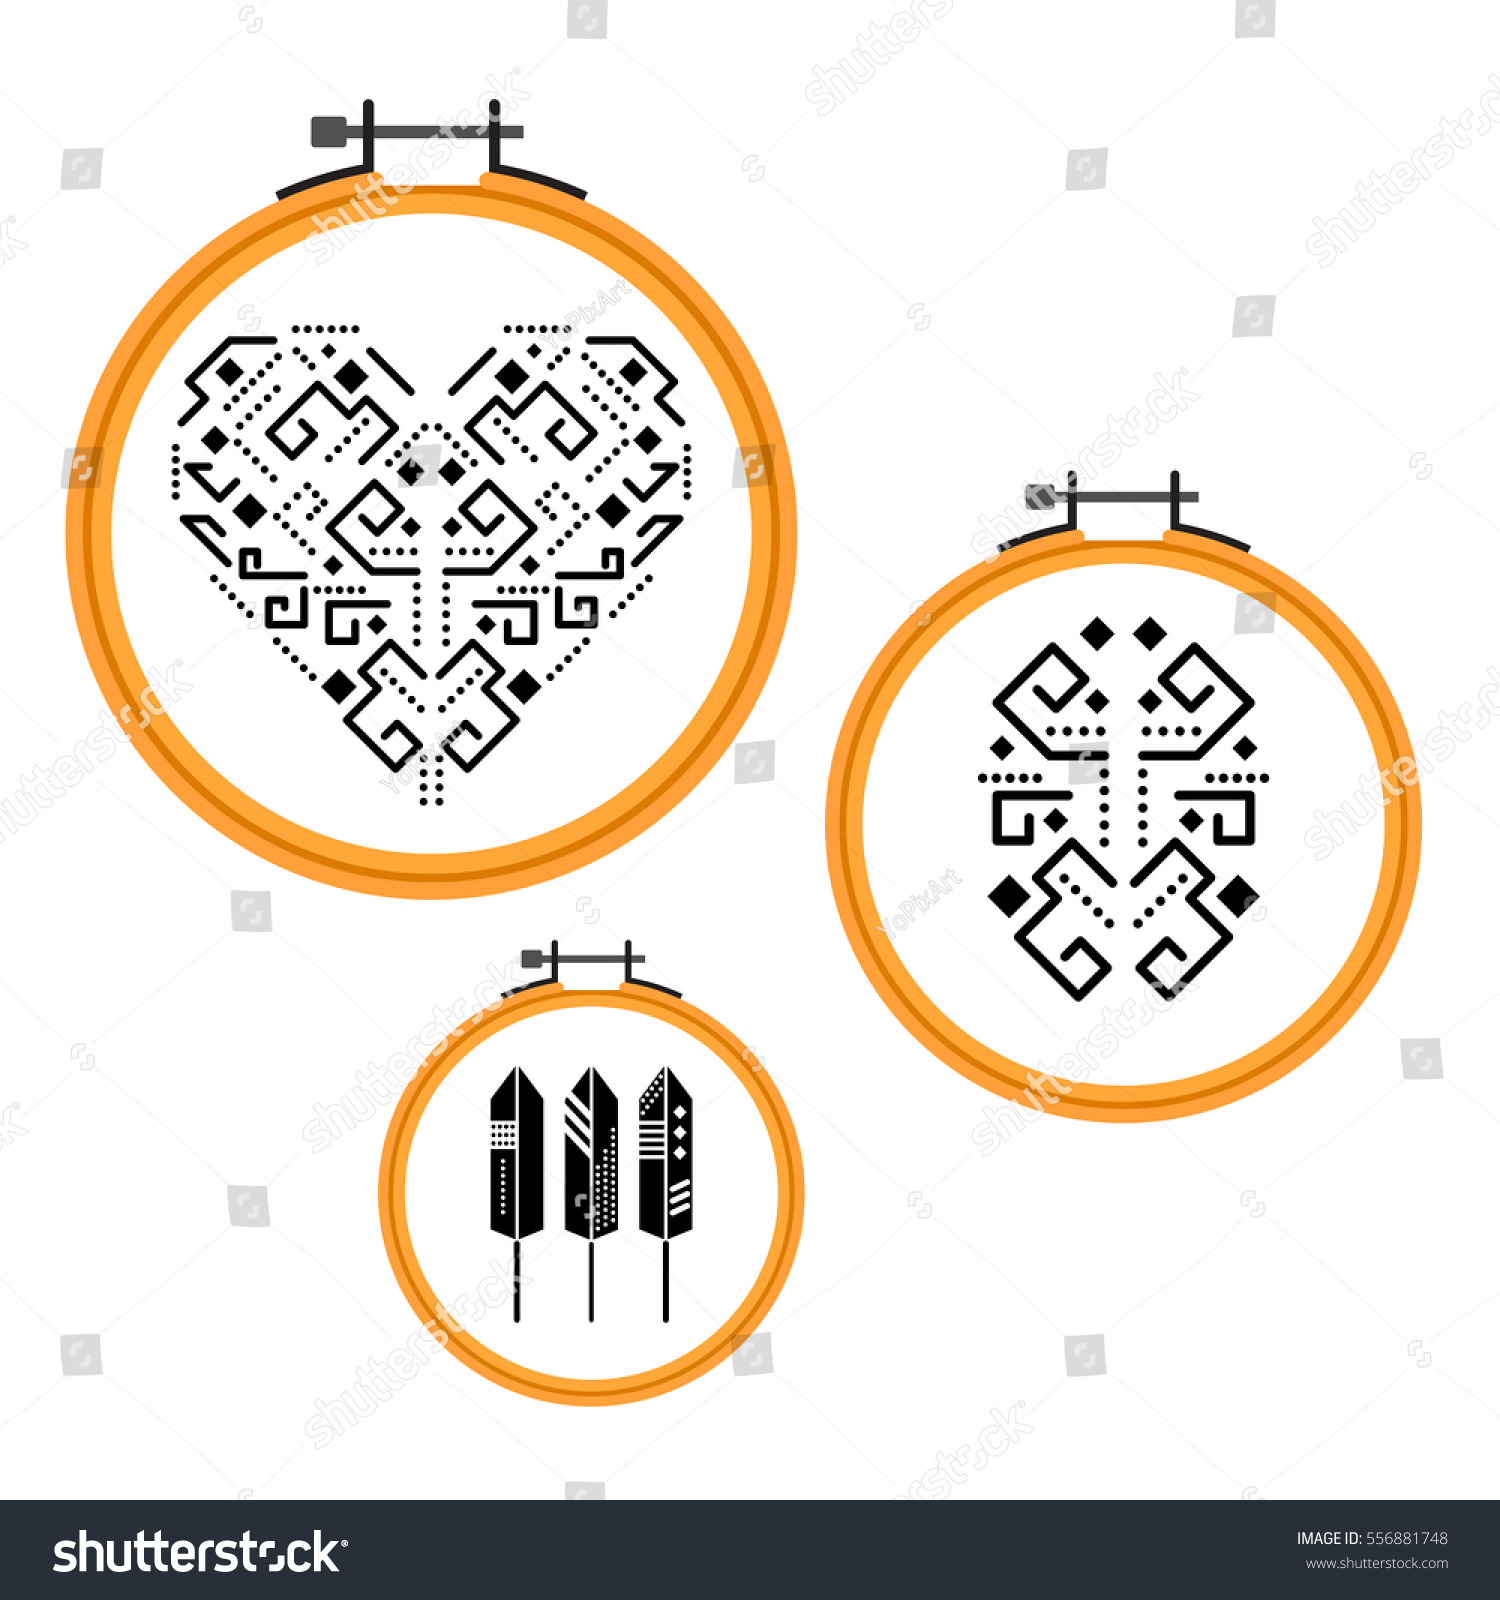 Needlework Tribal Design On Embroidery Hoops Stock Vector (Royalty ...